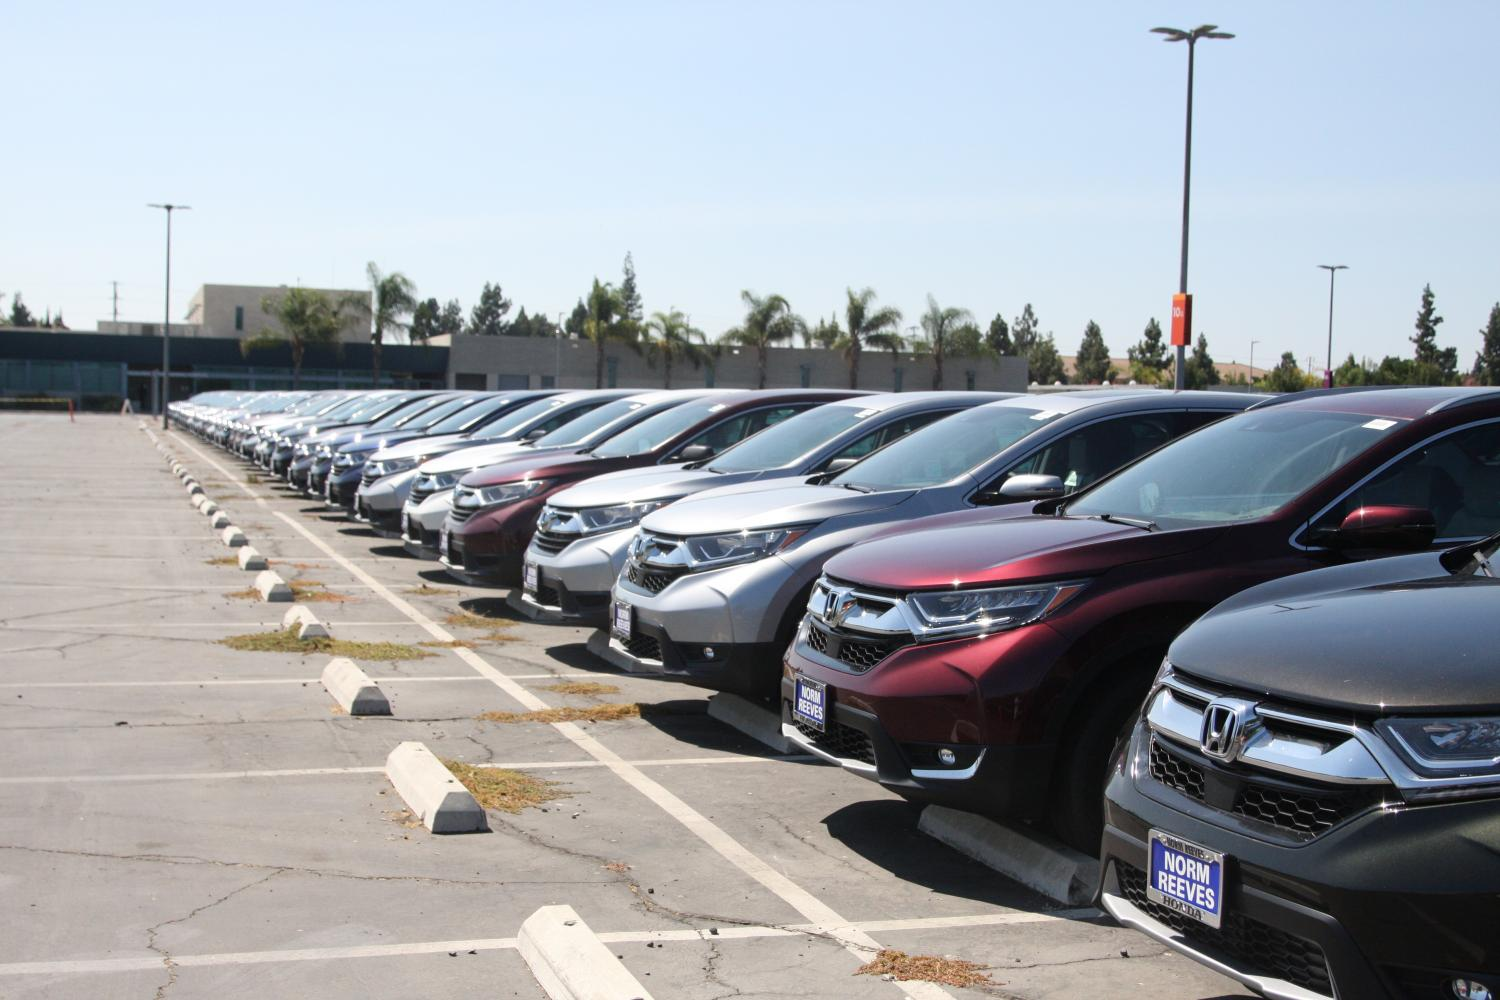 Norm Reeves Honda Are Taking Up Two Whole Rows Of The South Parking Lot Of  Cerritos